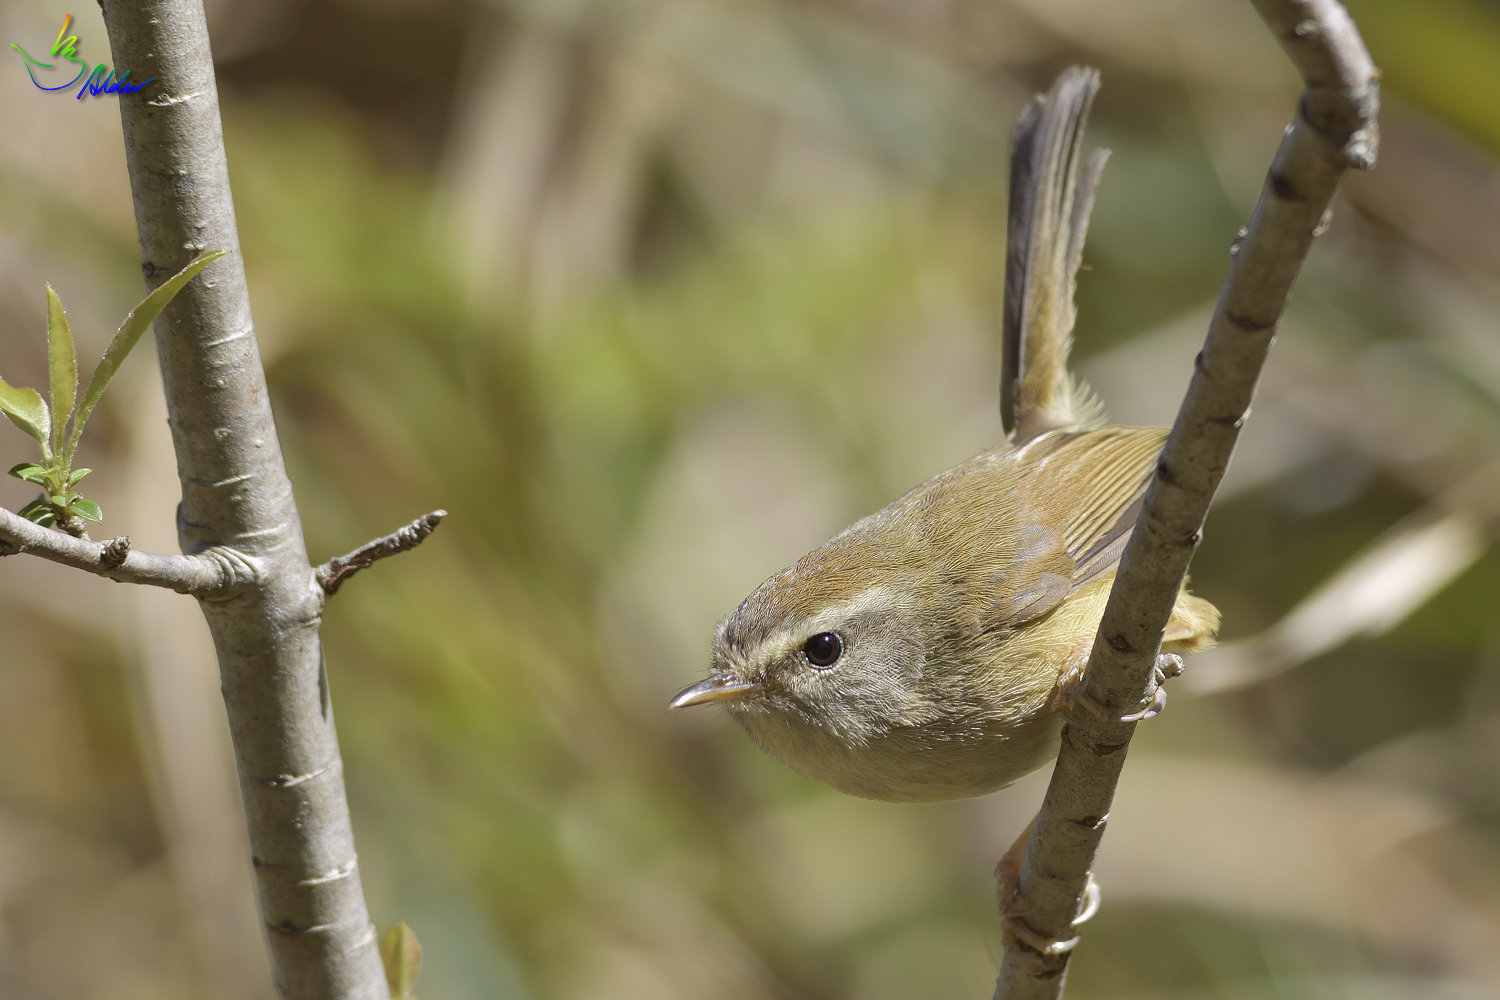 Yellow-bellied_Bush_Warbler_5054